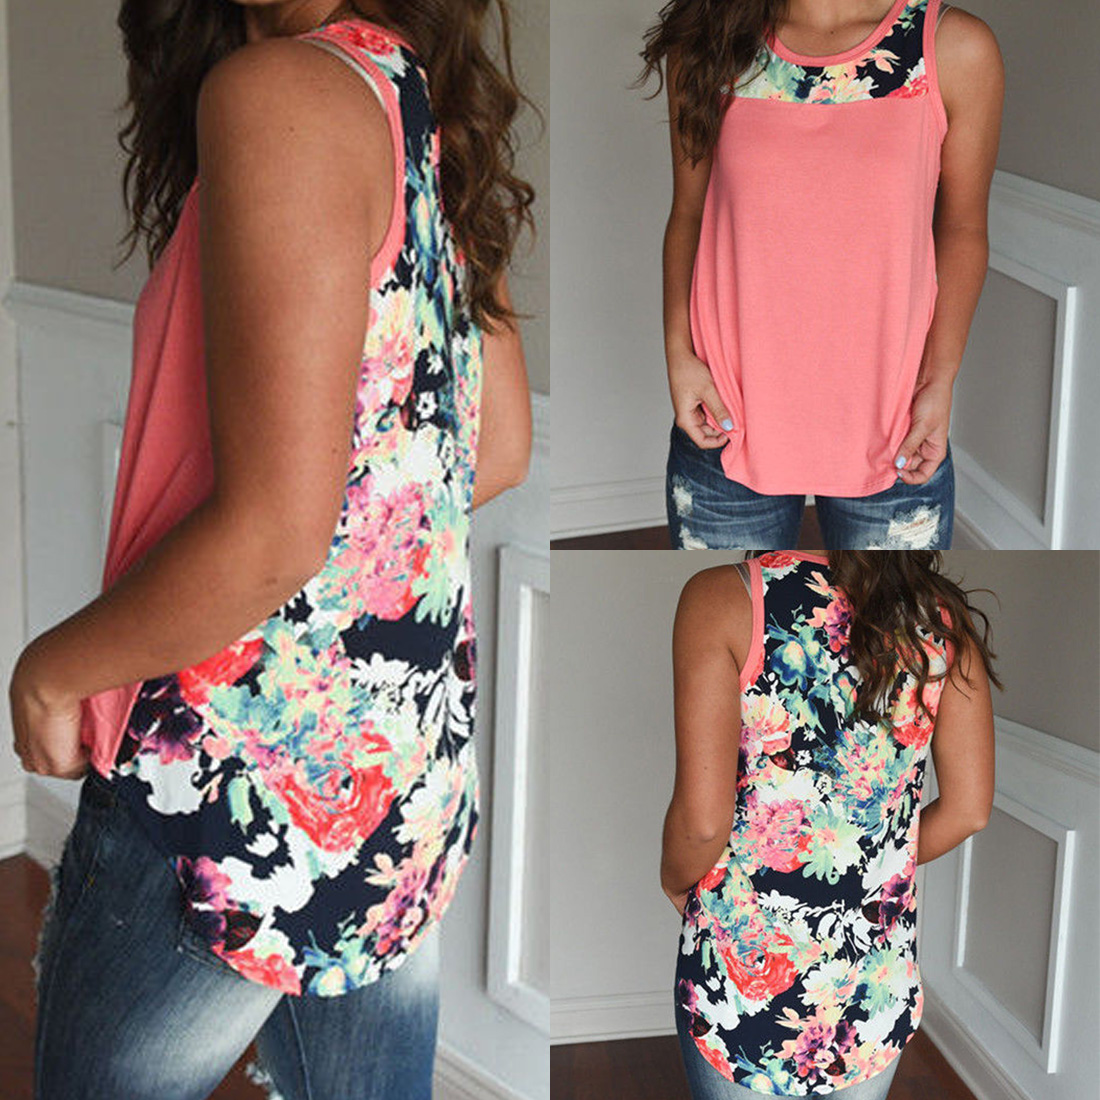 Top Quality  Casual Crew Neck Sleeveless Summer Tee Shirts Women Tops Floral Printed Patchwork Tank Vest Tops T-shirt